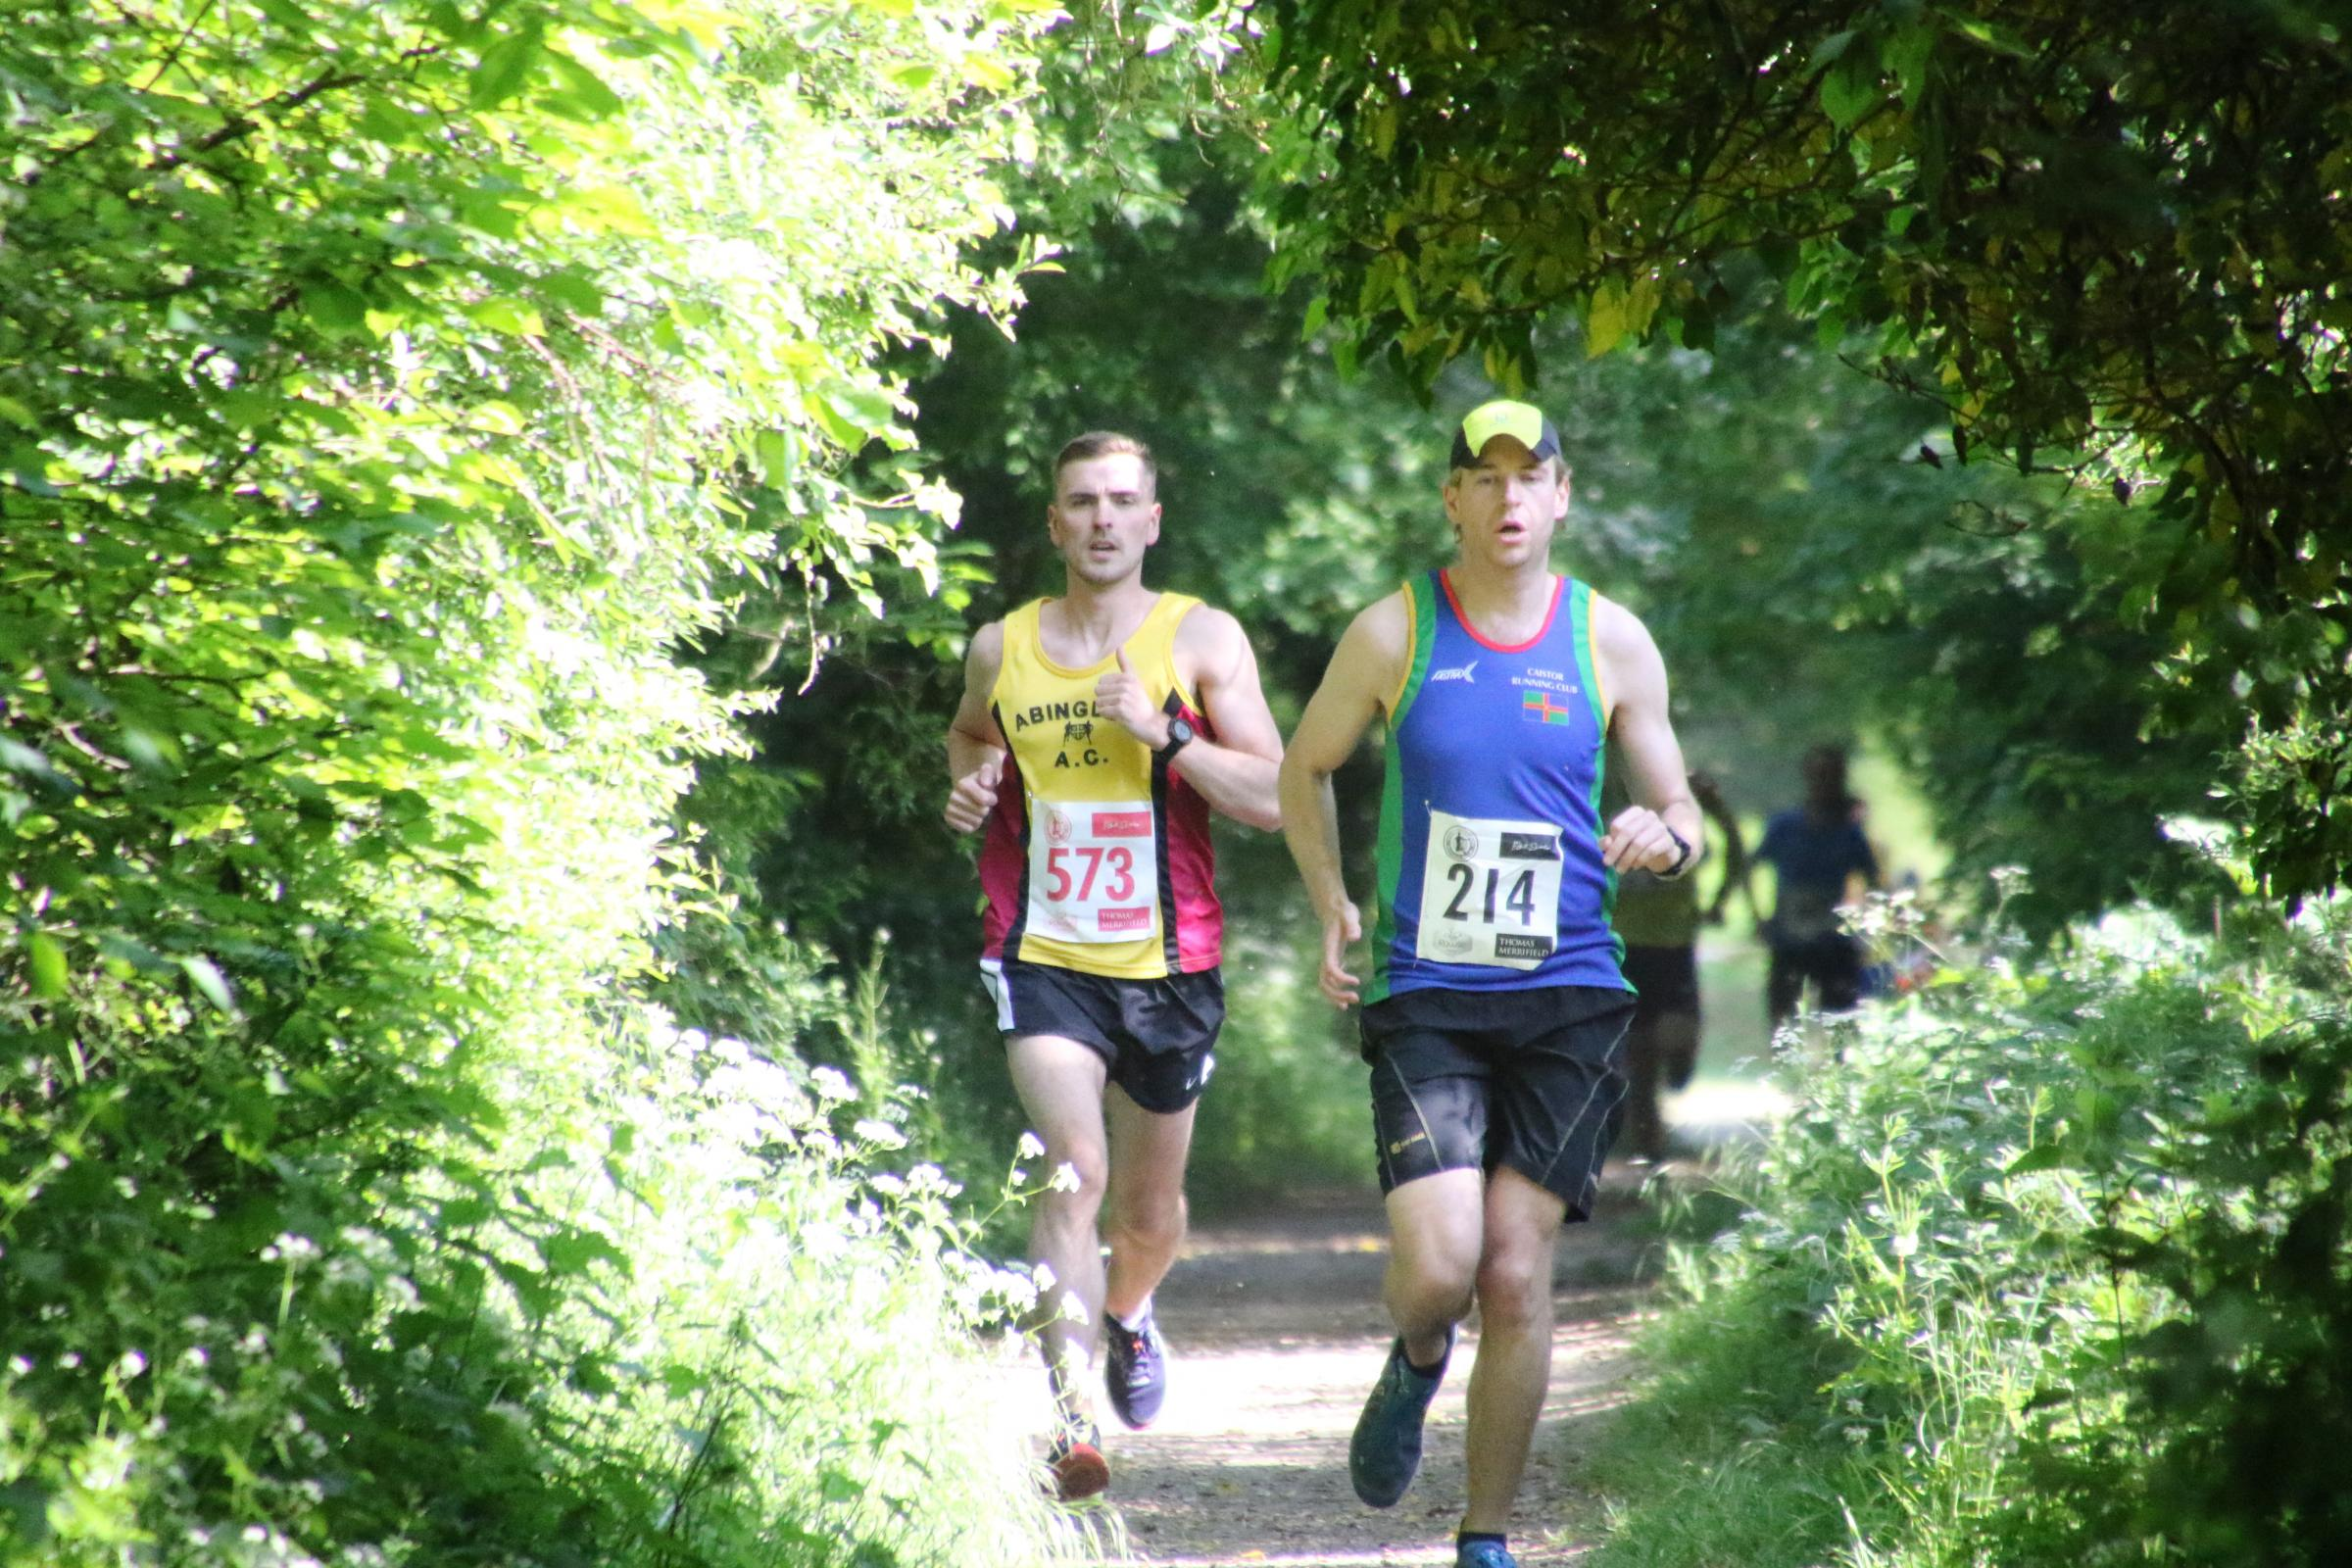 DIGGING DEEP: Harrison Read, pictured with the 10k winner Rob Payne, looks comfortable during the Thames Run 5kPicture: Barry Cornelius